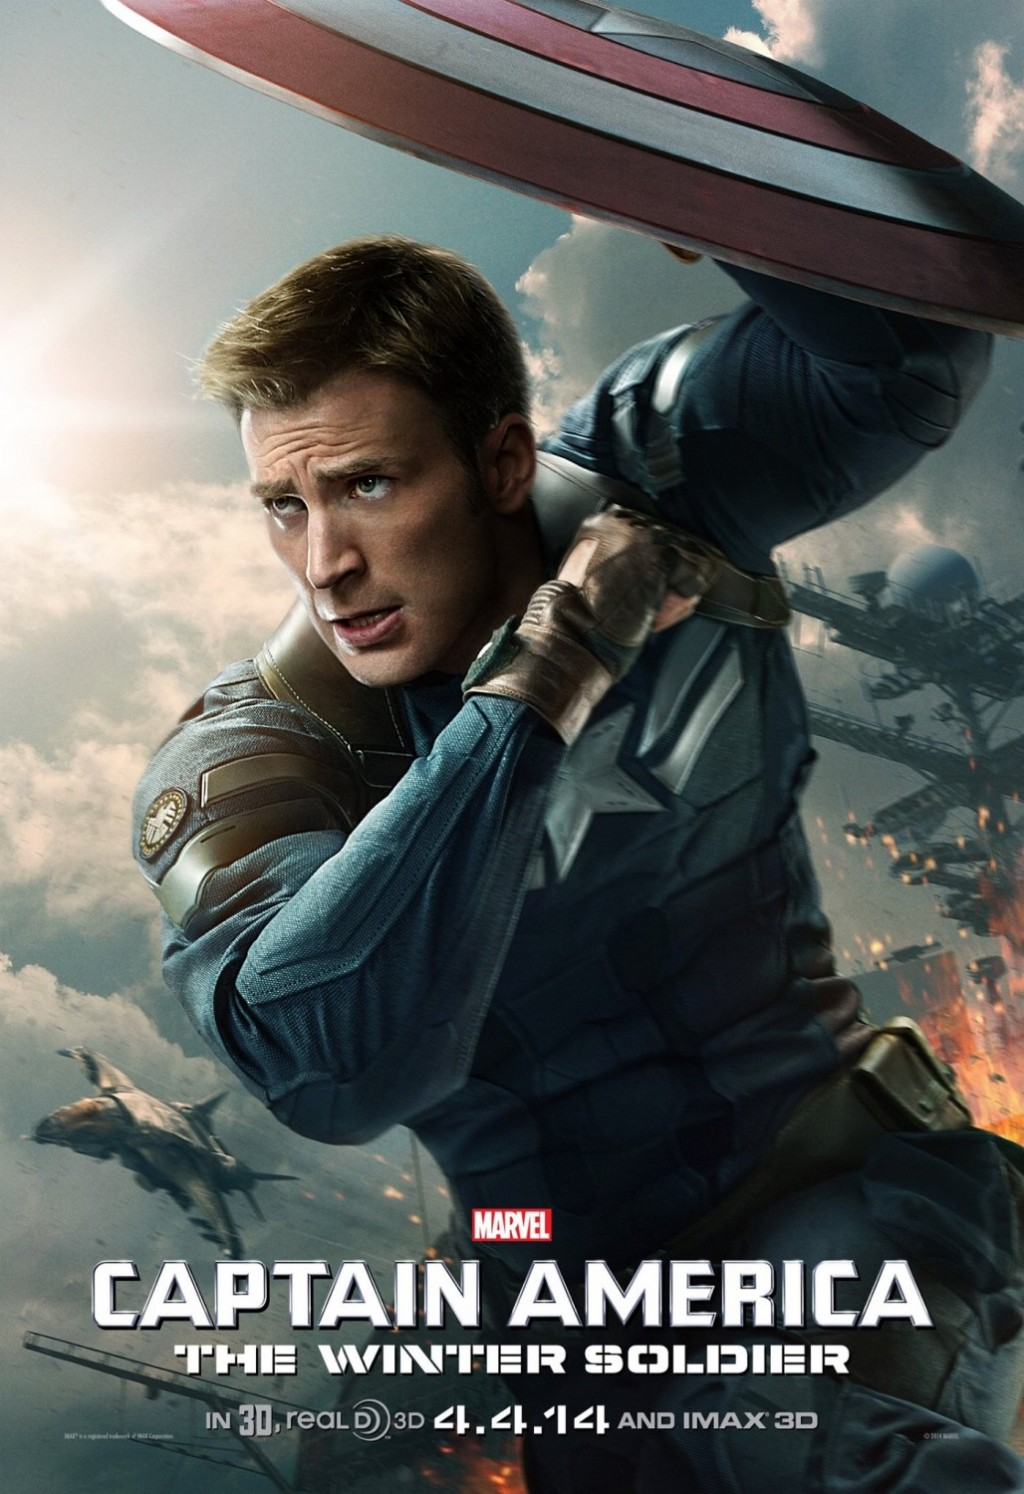 Captain America: The Winter Soldier – New Poster Shows Cap In Action